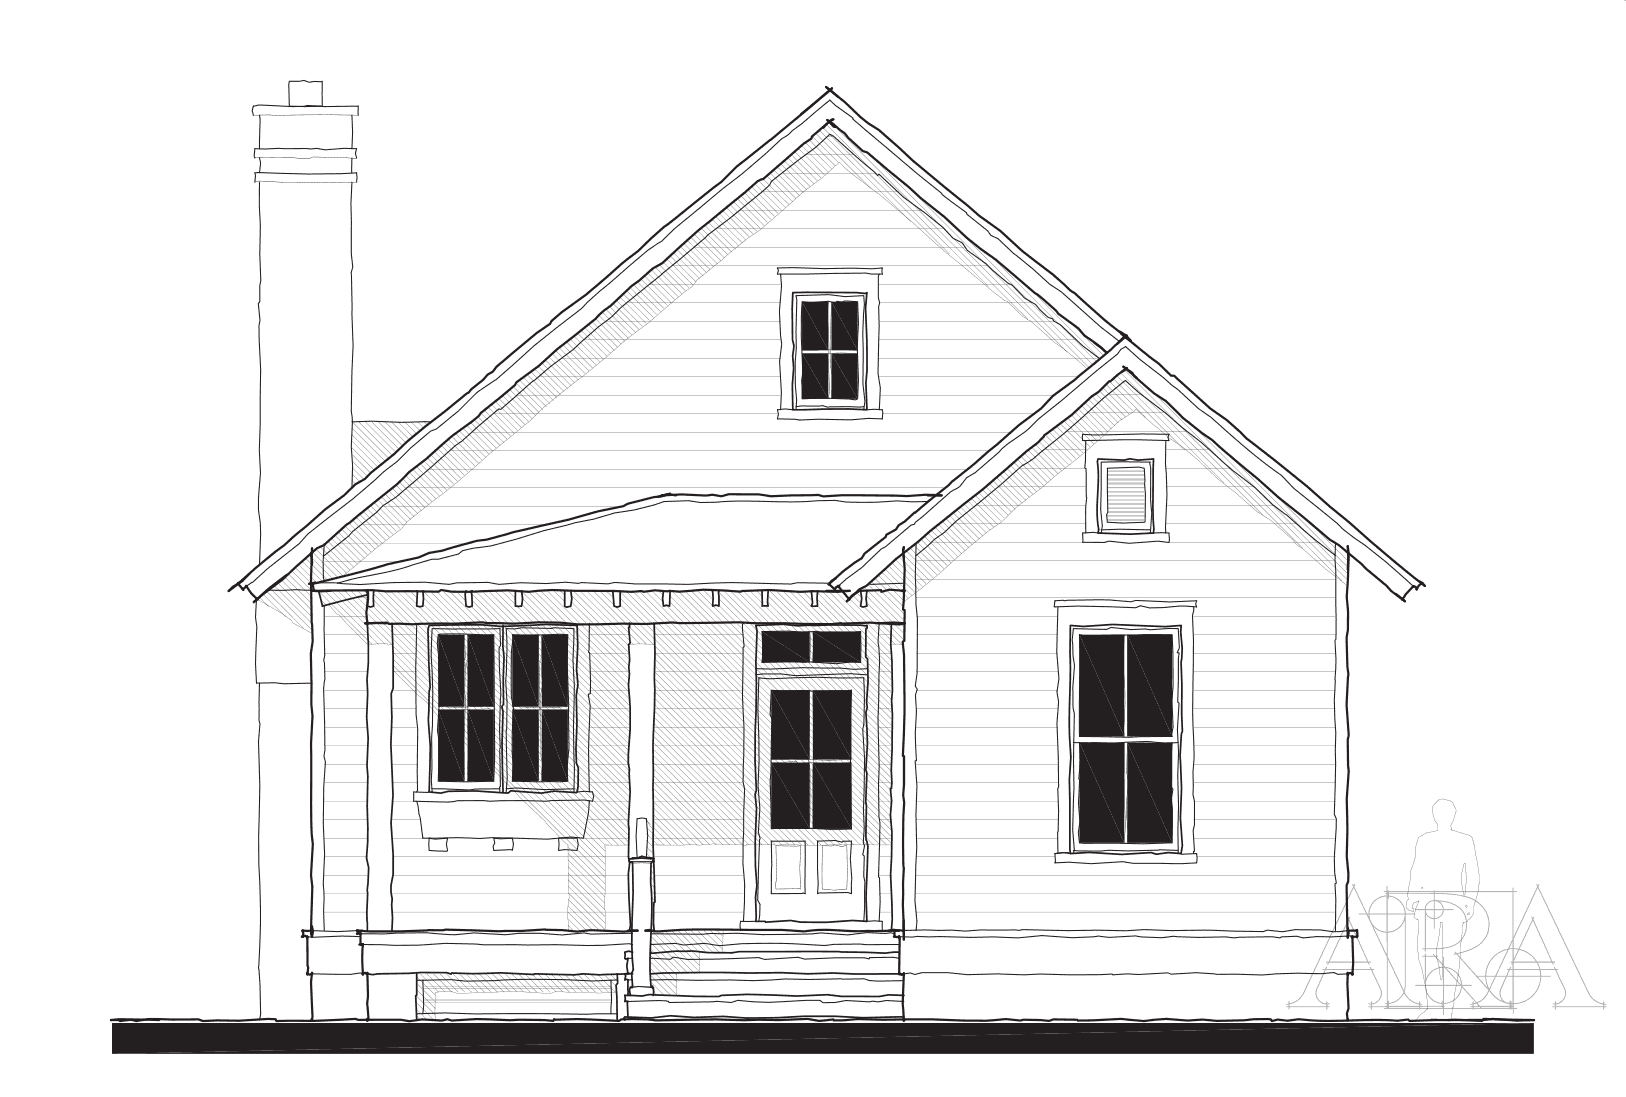 3 Hamlet Row Eddings Pt Elevation Updated